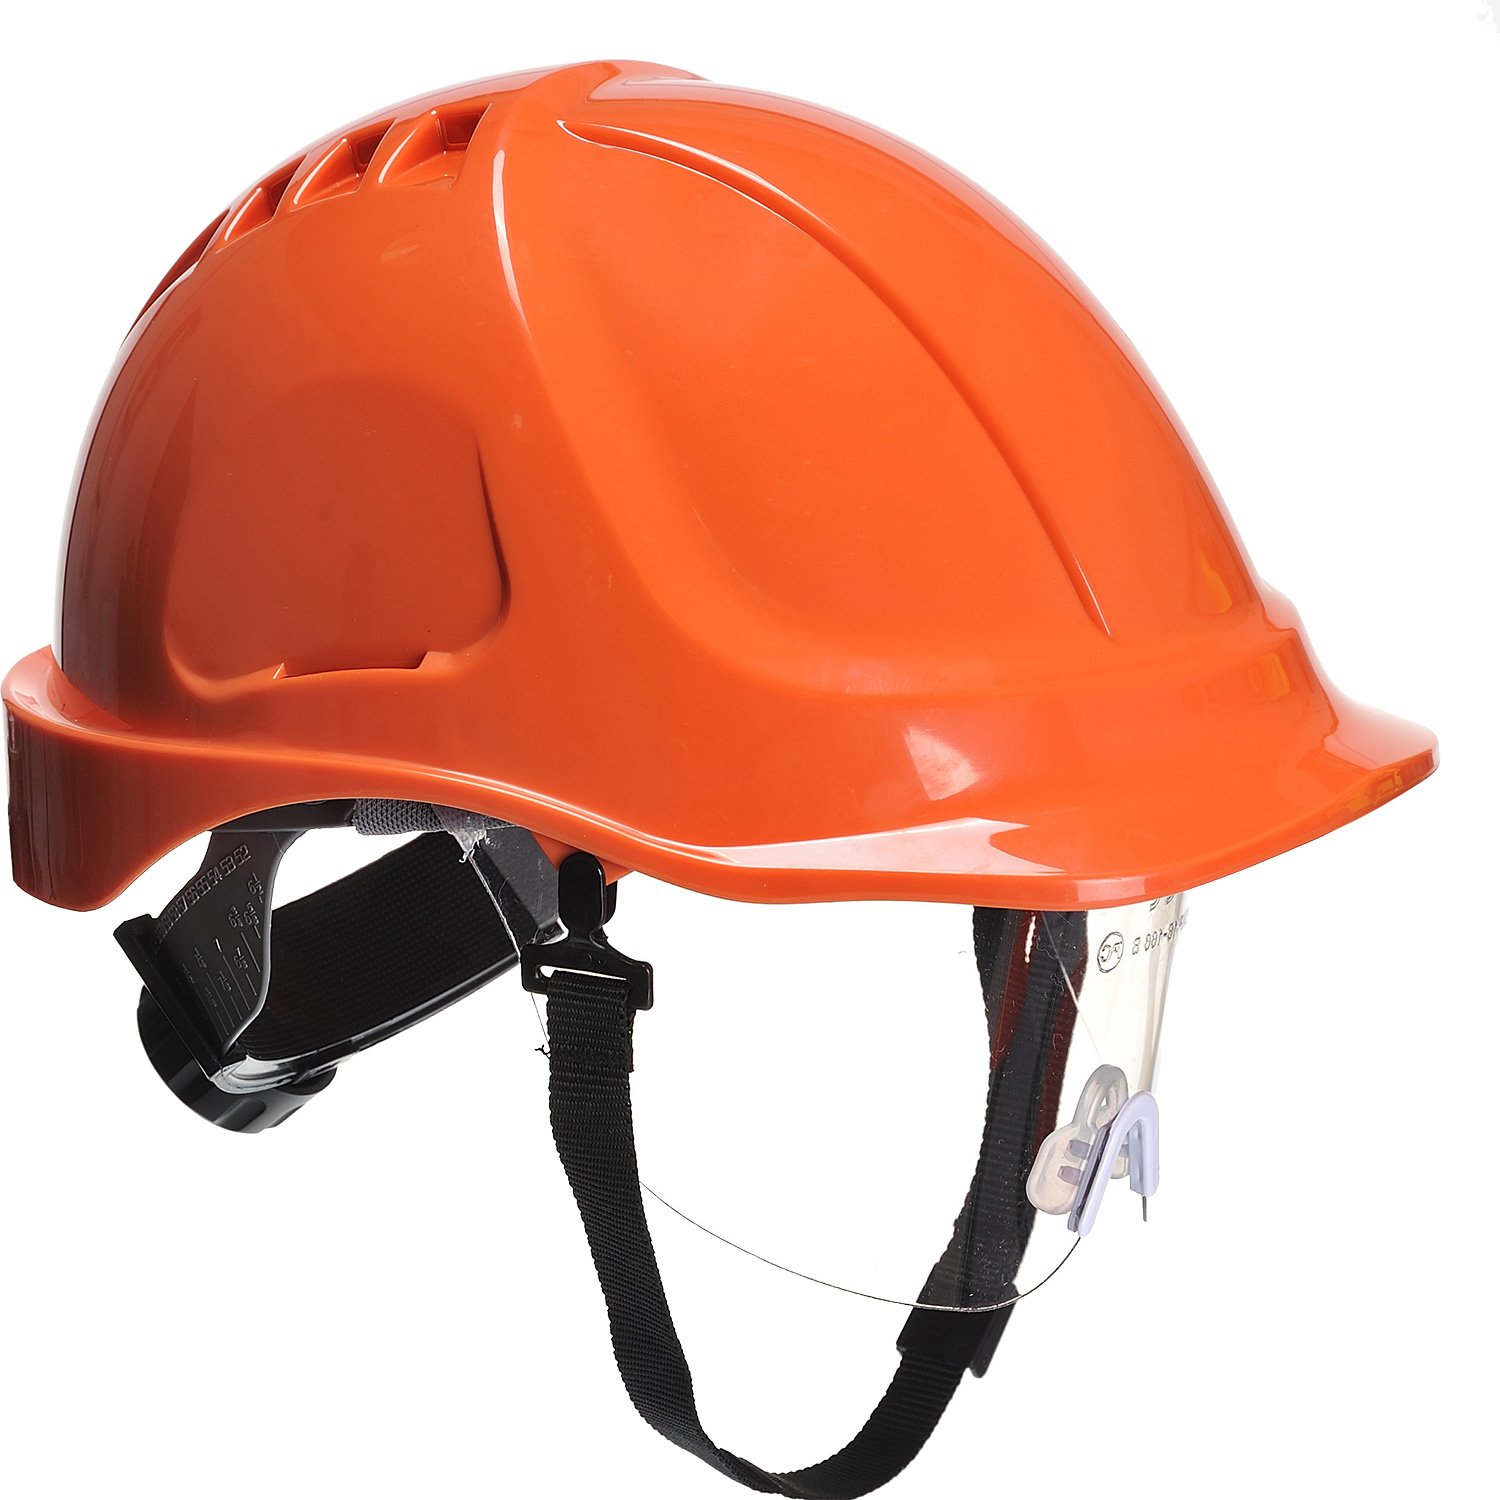 Portwest PW540RR Endurance Plus Casque avec visiè re Orange PW54ORR